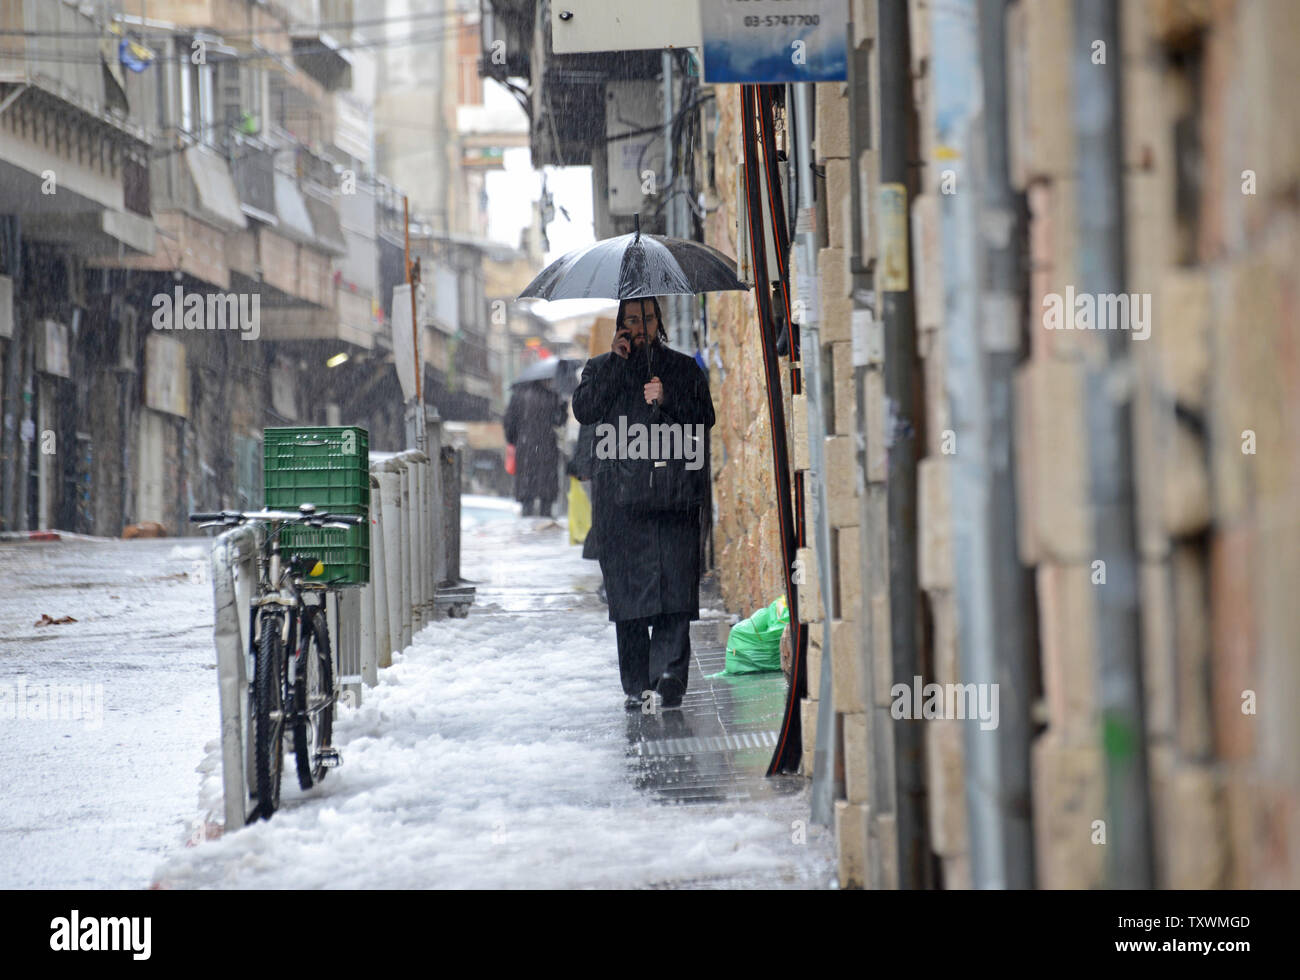 An Ultra-Orthodox Jew talks on a cellphone while walking in the snow and rain during a winter storm in Jerusalem, Israel, January 8, 2015.  A heavy winter storm is hitting the Middle East, while only 5 cm. or 1 inch of snow fell in Jerusalem. UPI/Debbie Hill Stock Photo